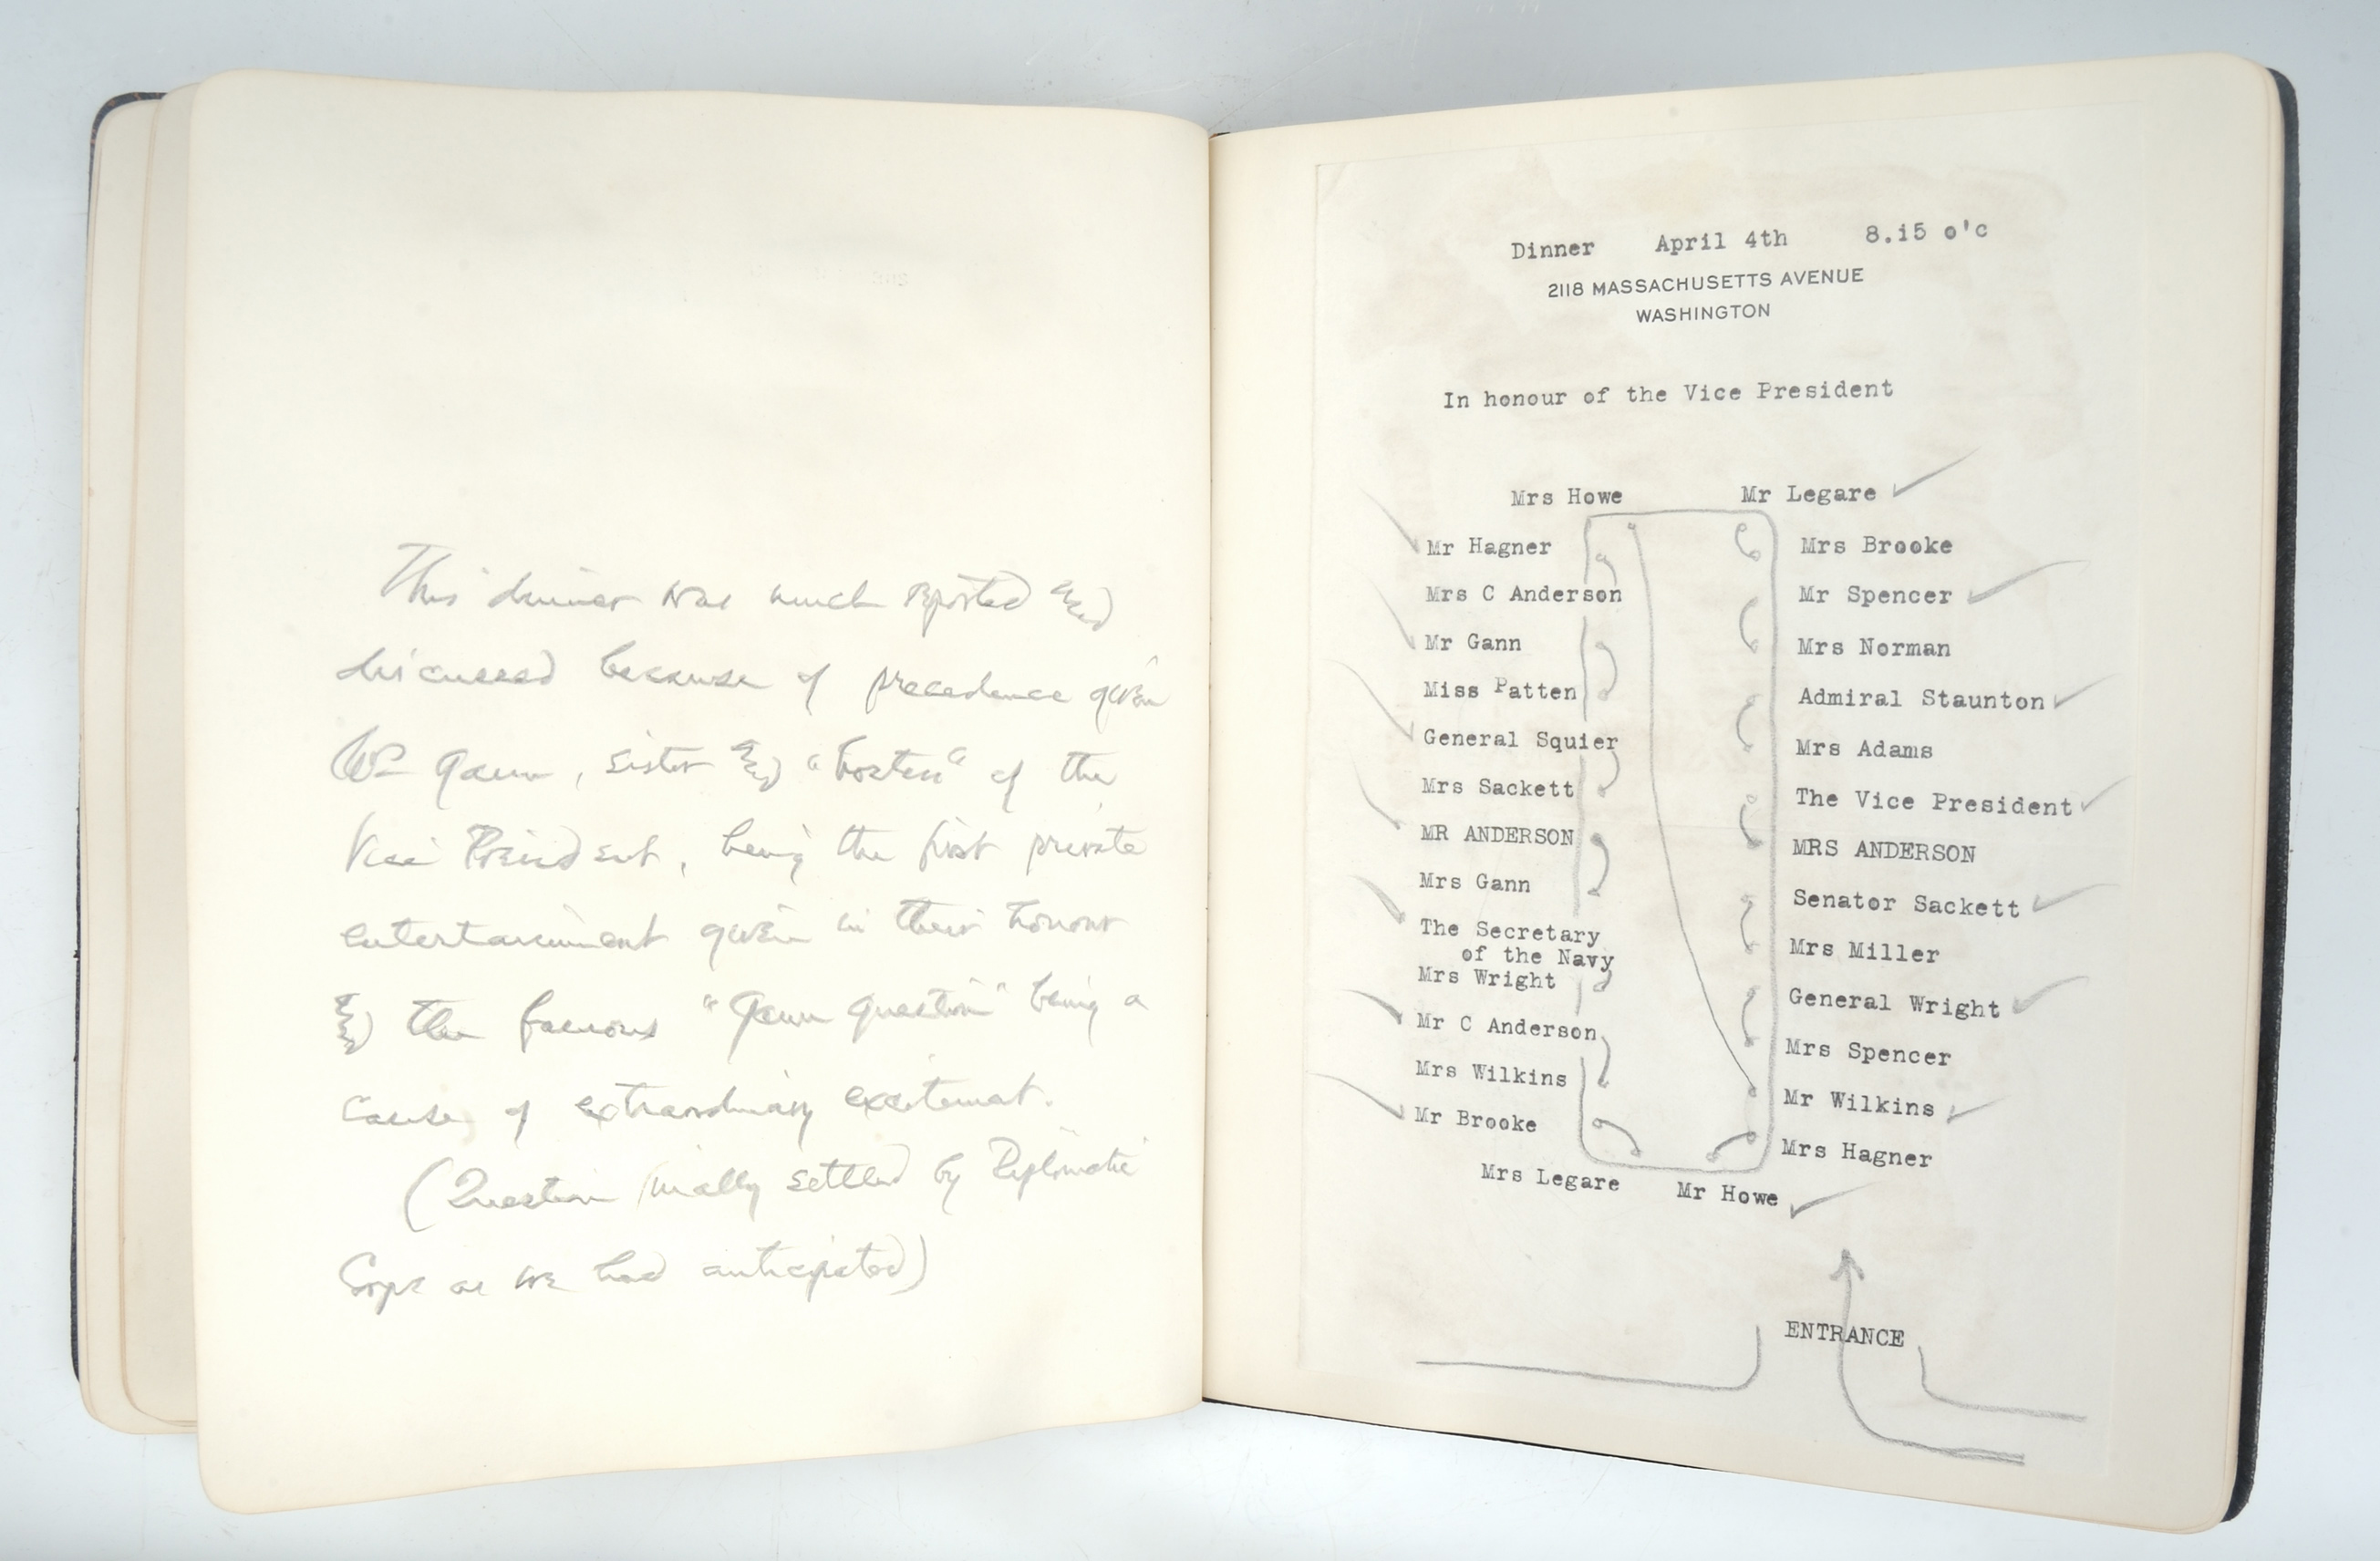 """""""A Book of Dinner lists and Plans …,"""" April 4, 1929"""